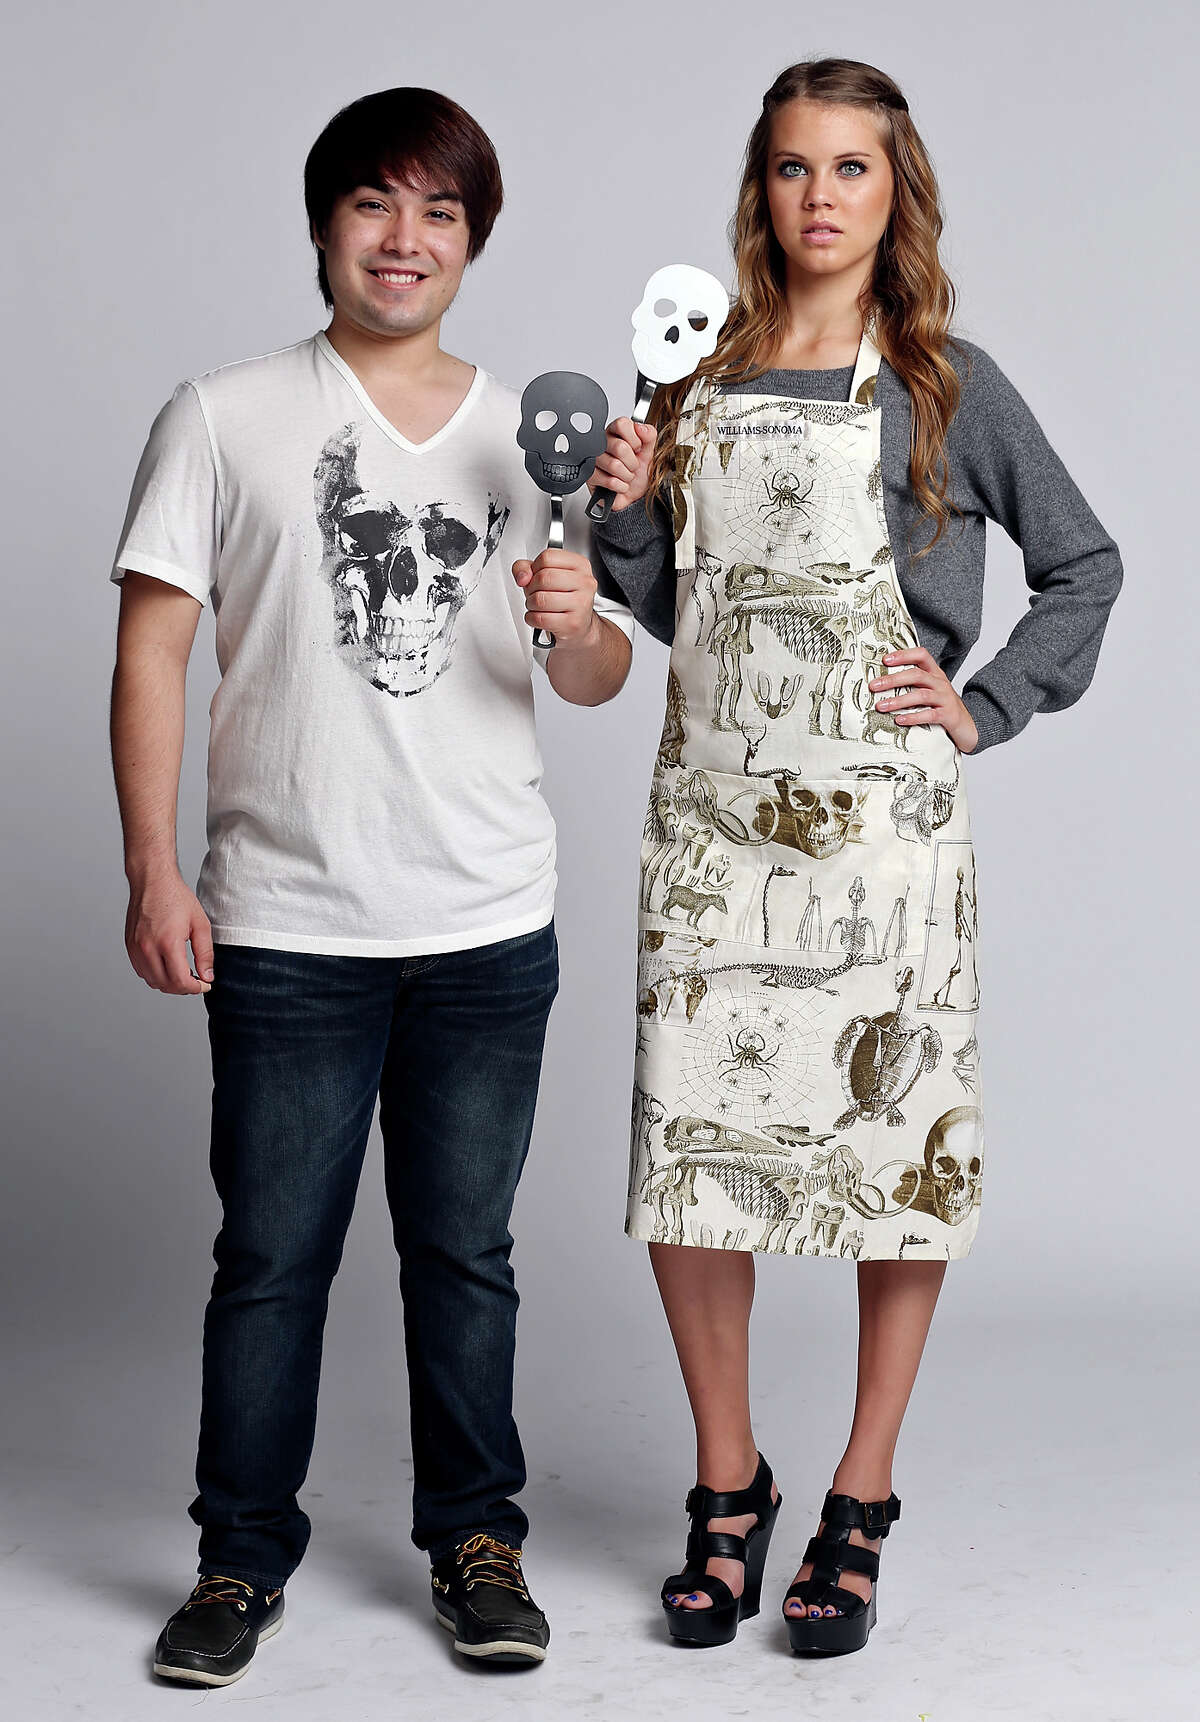 Jose Munoz (left) models a John Varvatos skull T-shirt, $69, Neiman Marcus and Kassi Pena models a cashmere skull sweater by 360 Cashmere, $298, Neiman Marcus and Skellie Toile apron, $29.99, from Williams Sonoma. Both hold skull spatulas,Williams Sonoma, $12.95.